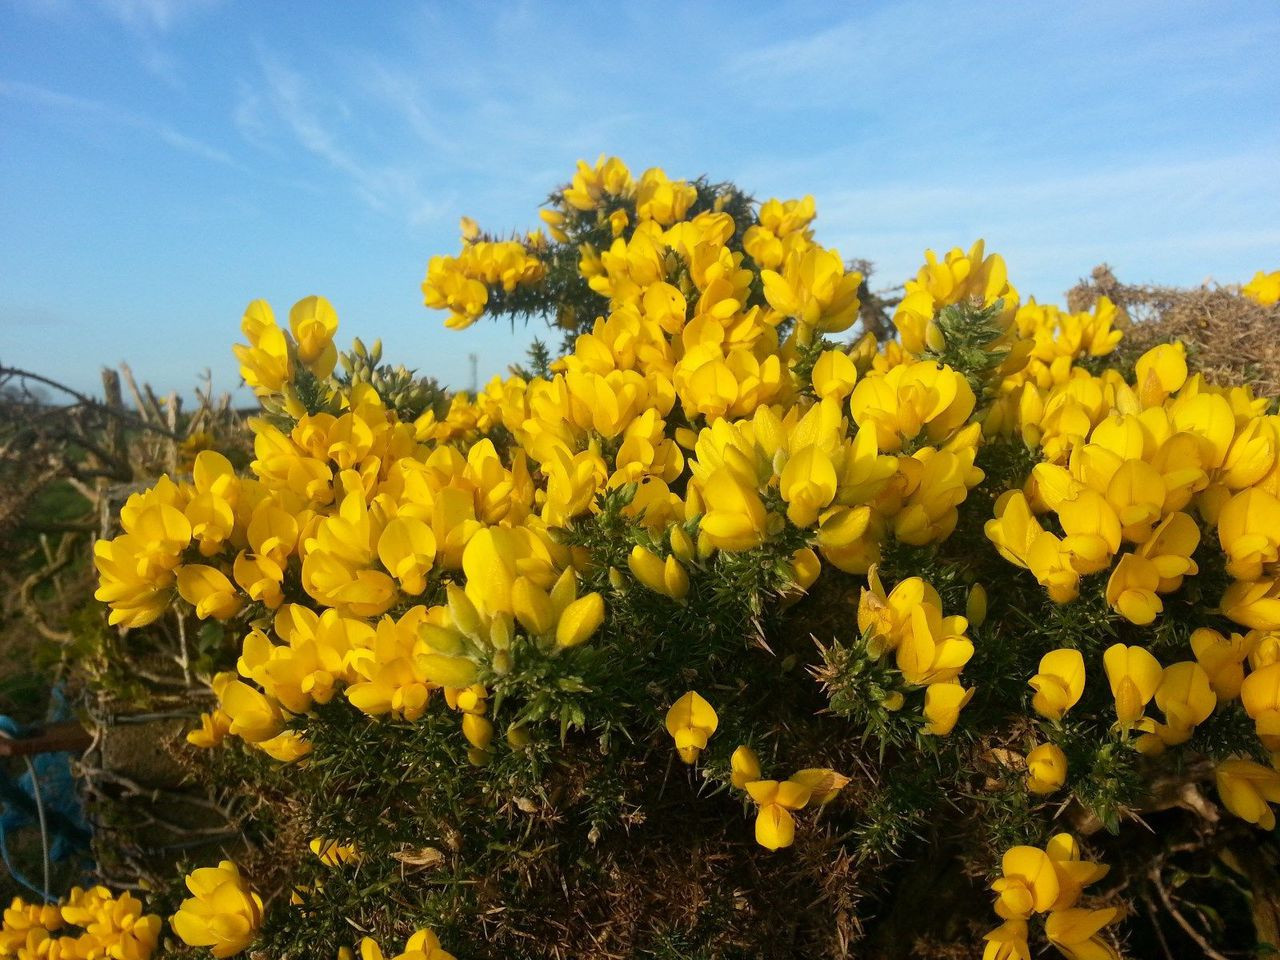 1 Gorse Hedging Bushprickly Furze Plantfragrant Yellow Whin